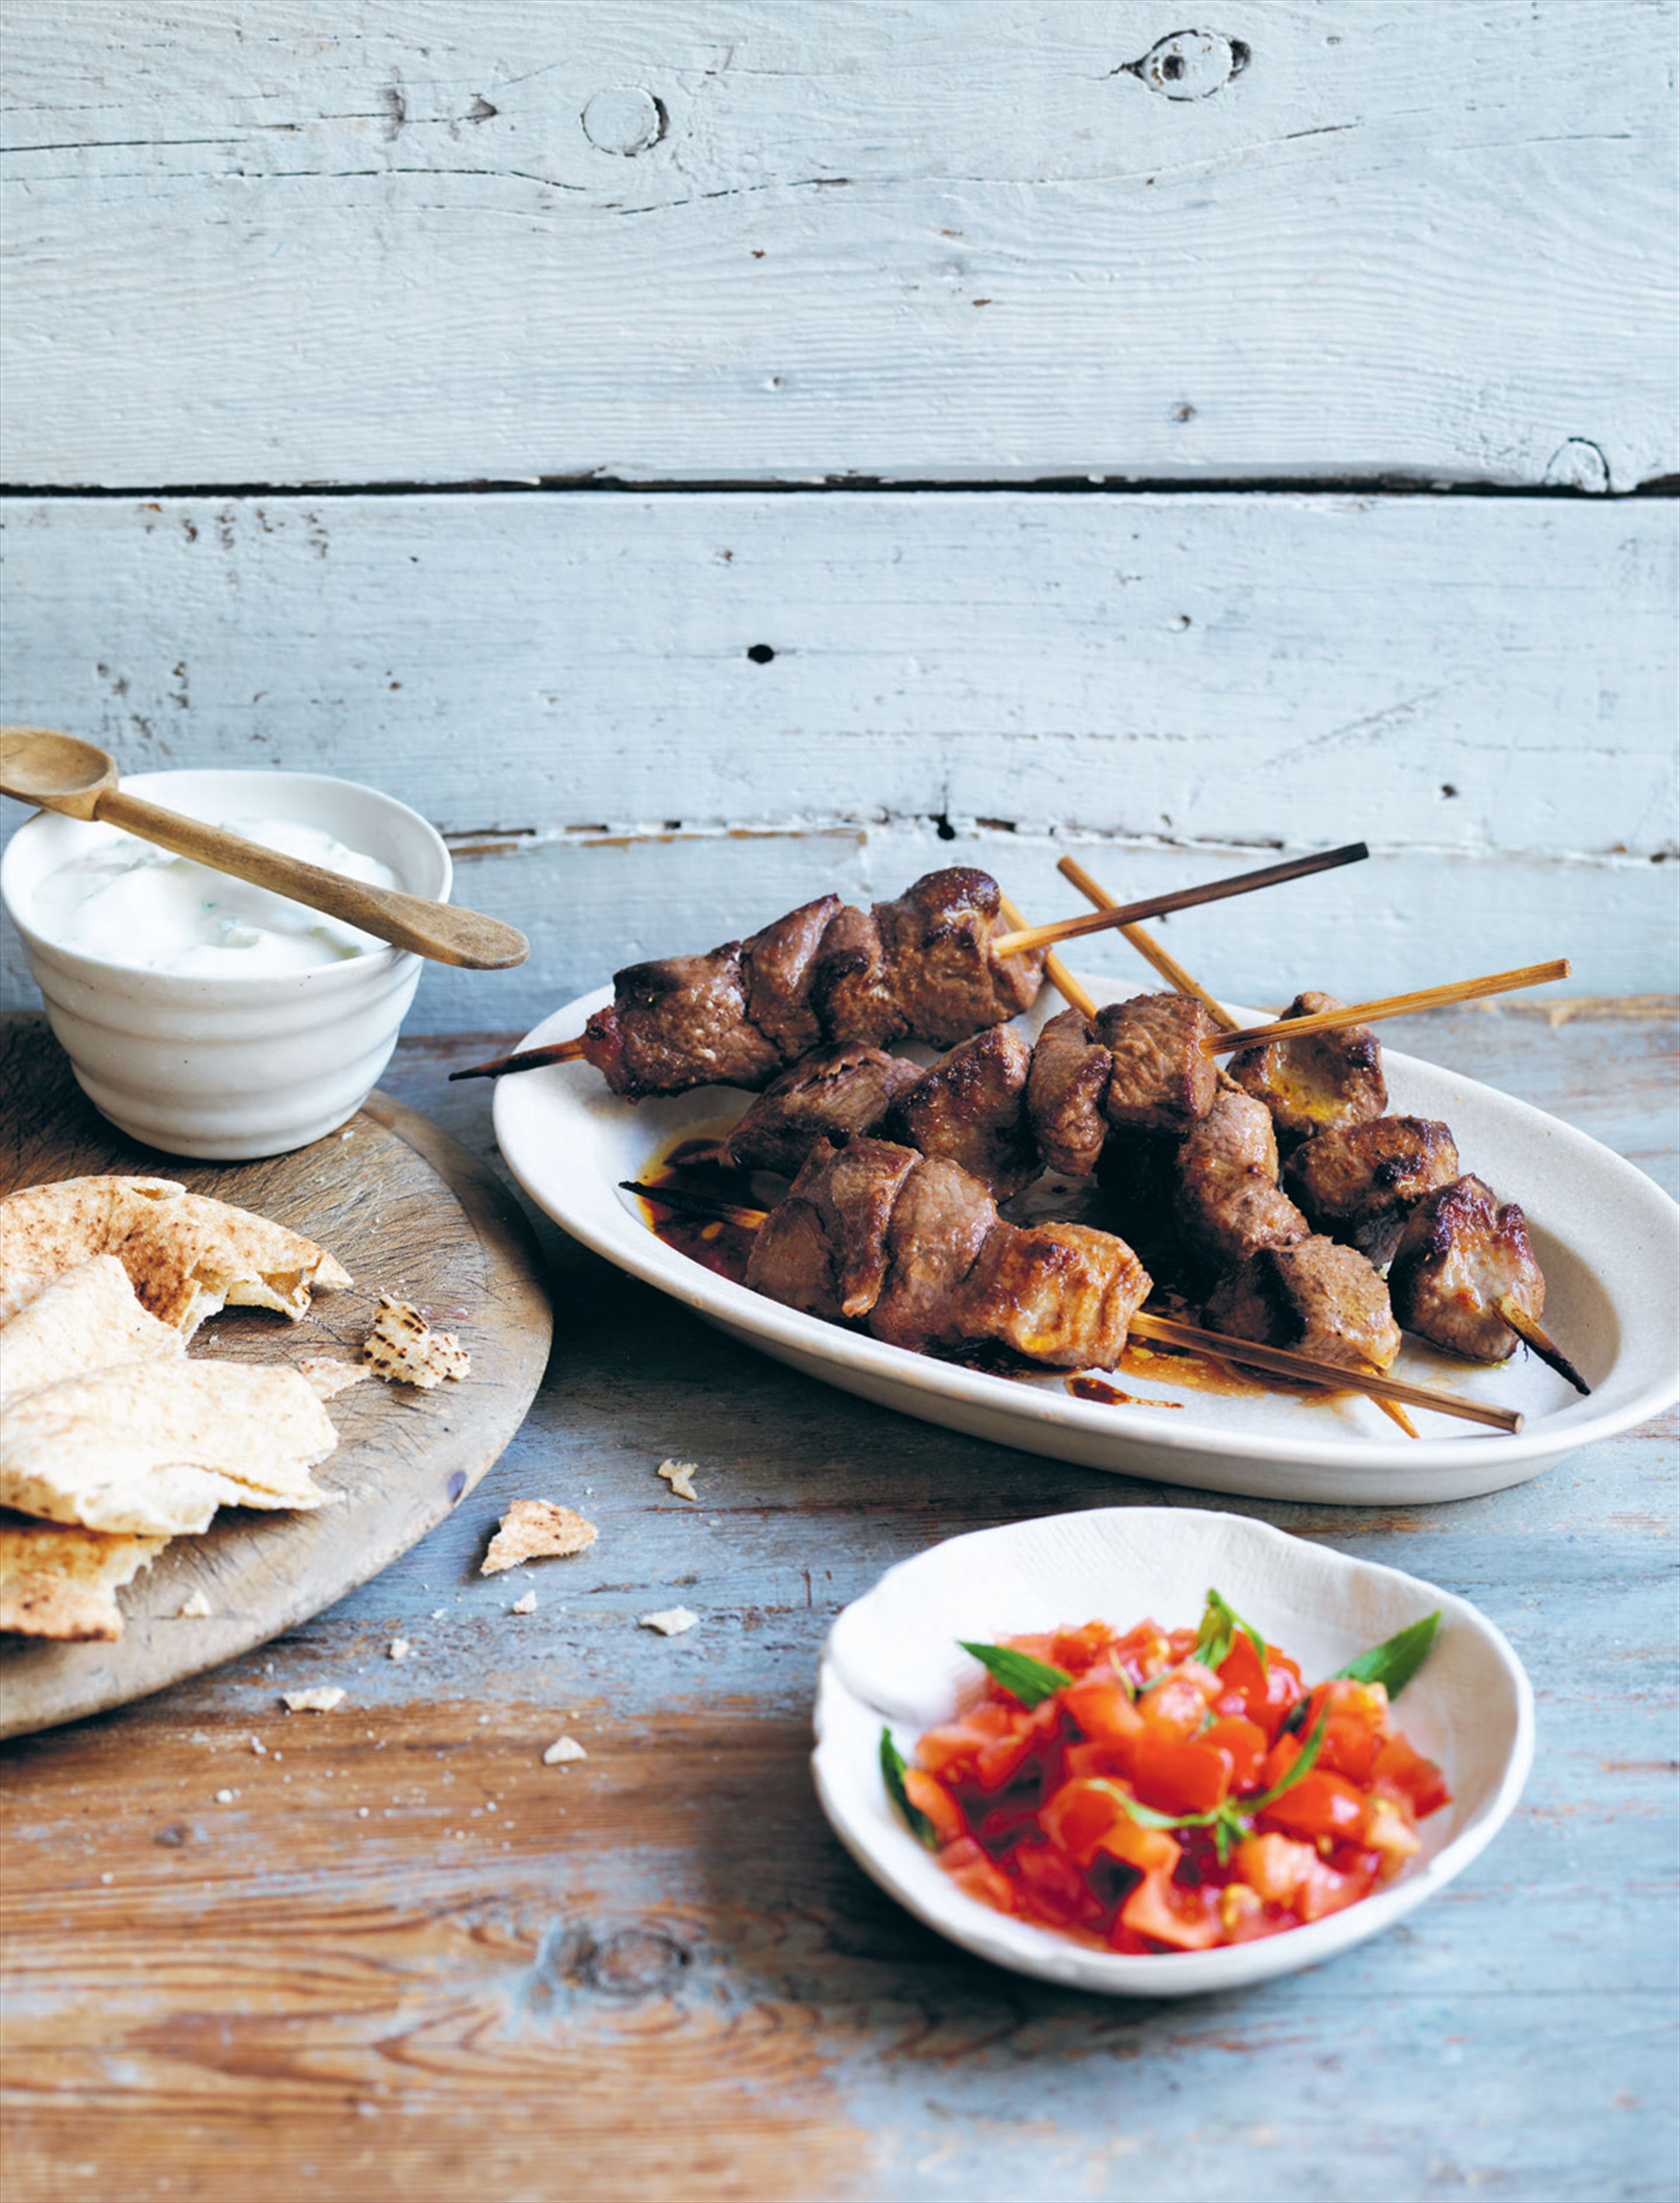 Lamb souvlaki with tzatziki